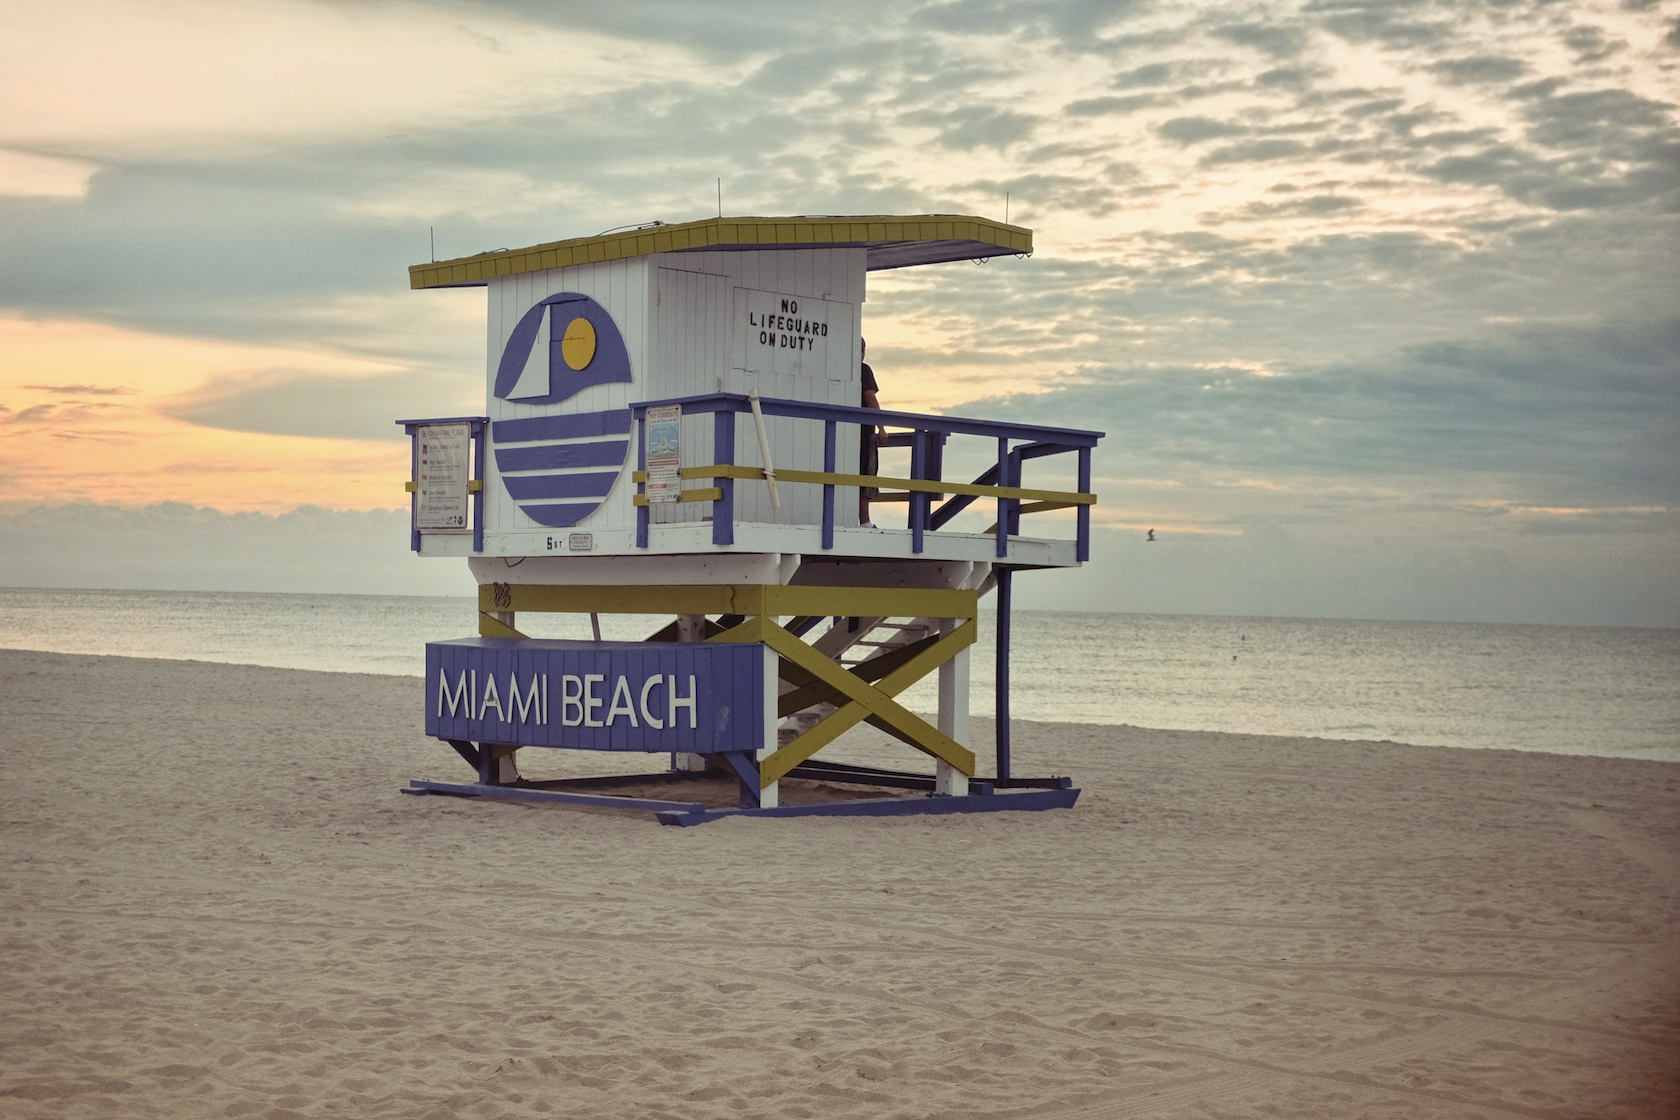 """5th Street: """"I feel like this is such an iconic one with the logo. It's the only one that says Miami Beach. It reminds me of the Welcome to Miami Beach sign when you come over on the MacArthur. It's probably the city's best ad on the beach."""" (Sean R. Sullivan, seanwashere.com)"""